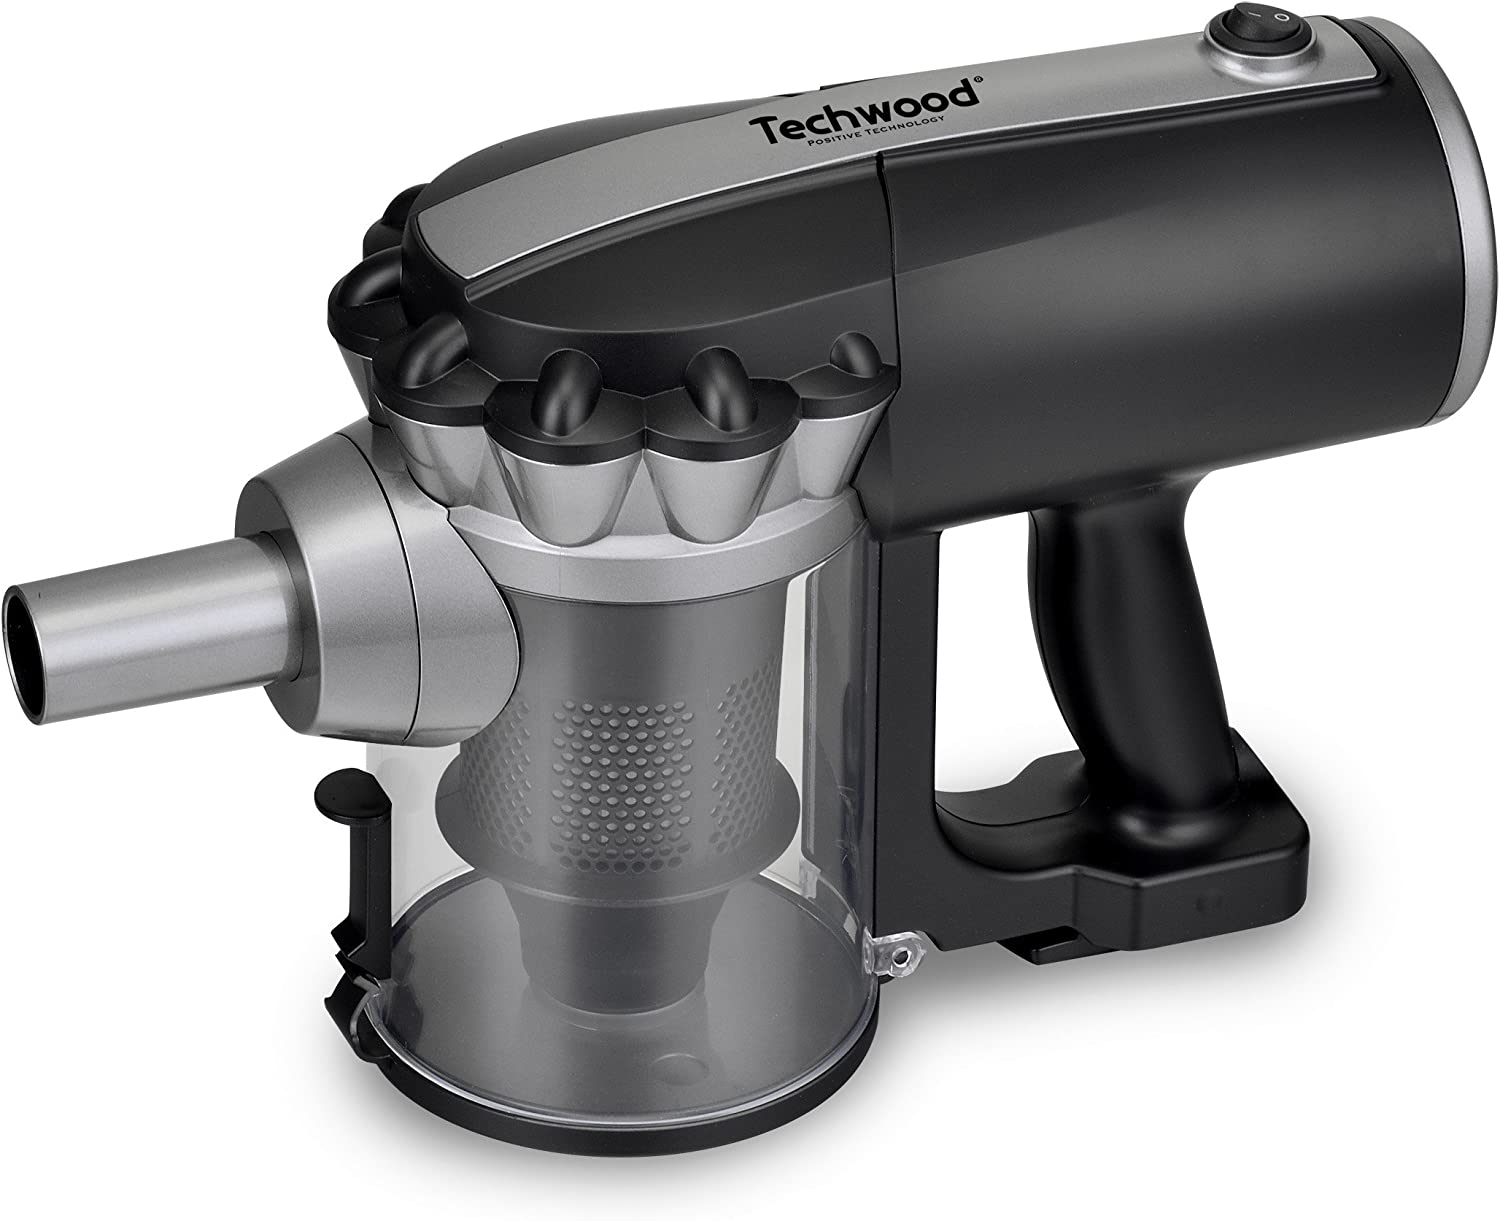 Techwood TAS-655 Aspirateur balai 2 en 1, 600 W, 0.5 liters, Noir/Orange Noir/Argent